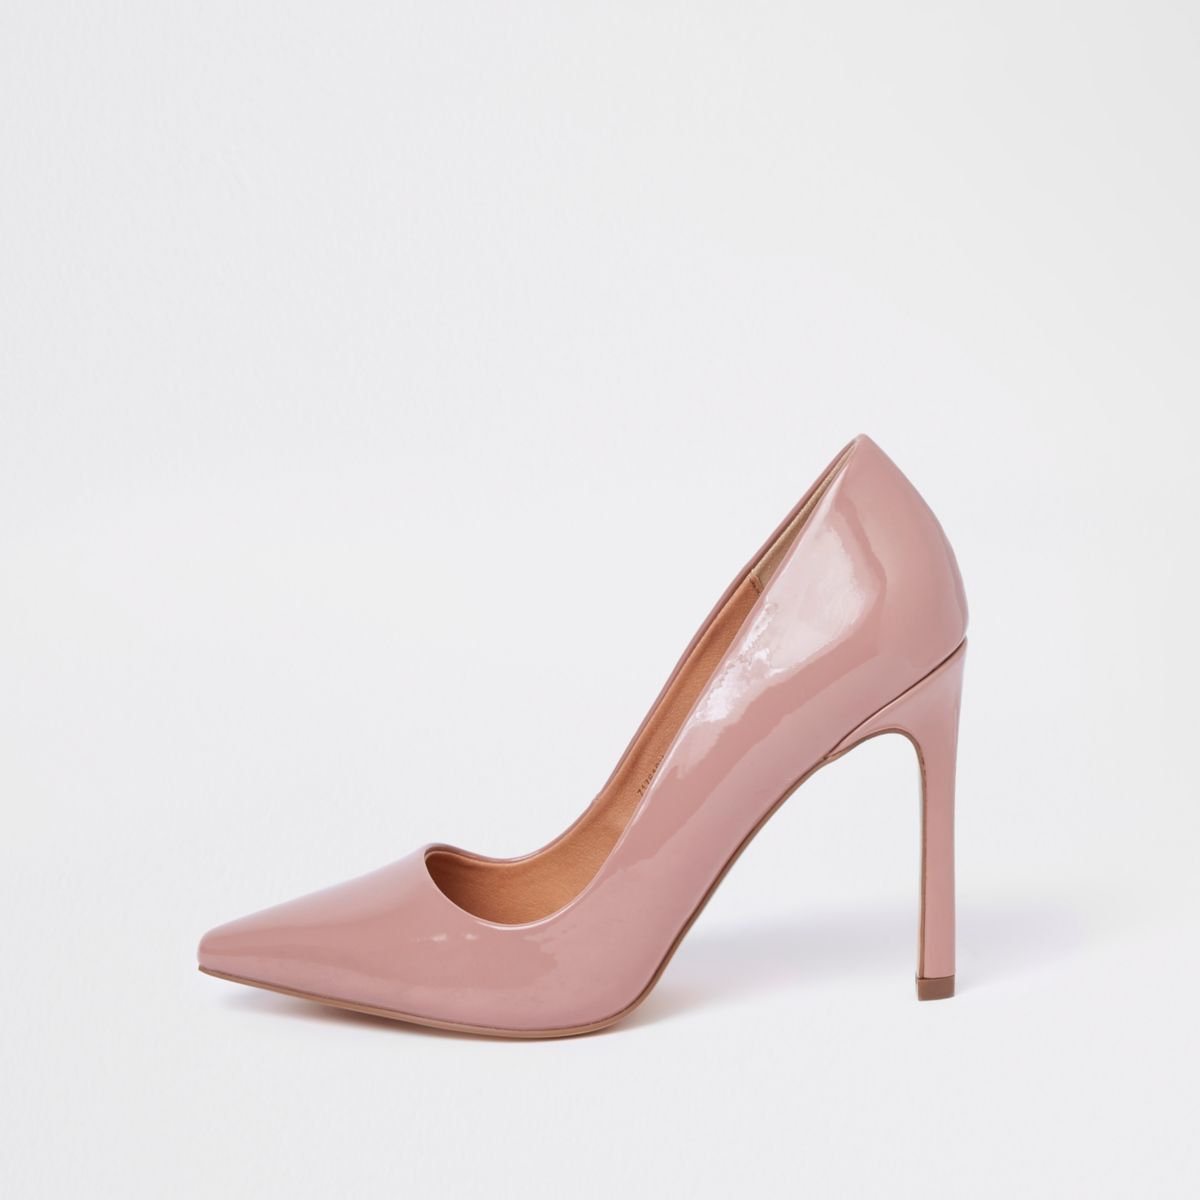 Nude pink patent court shoes